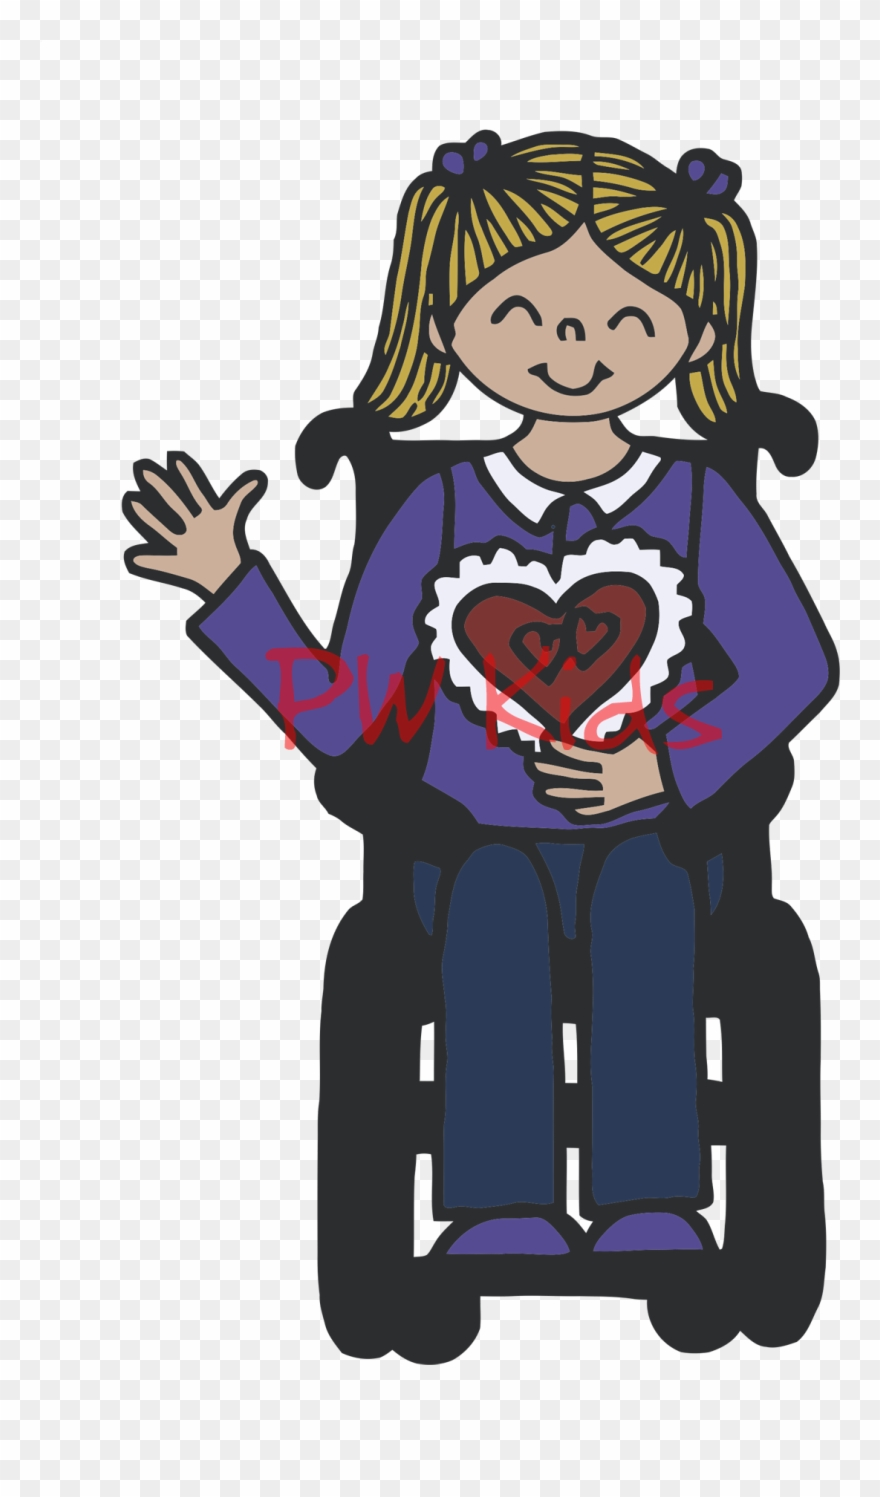 Inclusive clipart jpg download Inclusive Disability Clip Art - Cerebral Palsy - Png ... jpg download